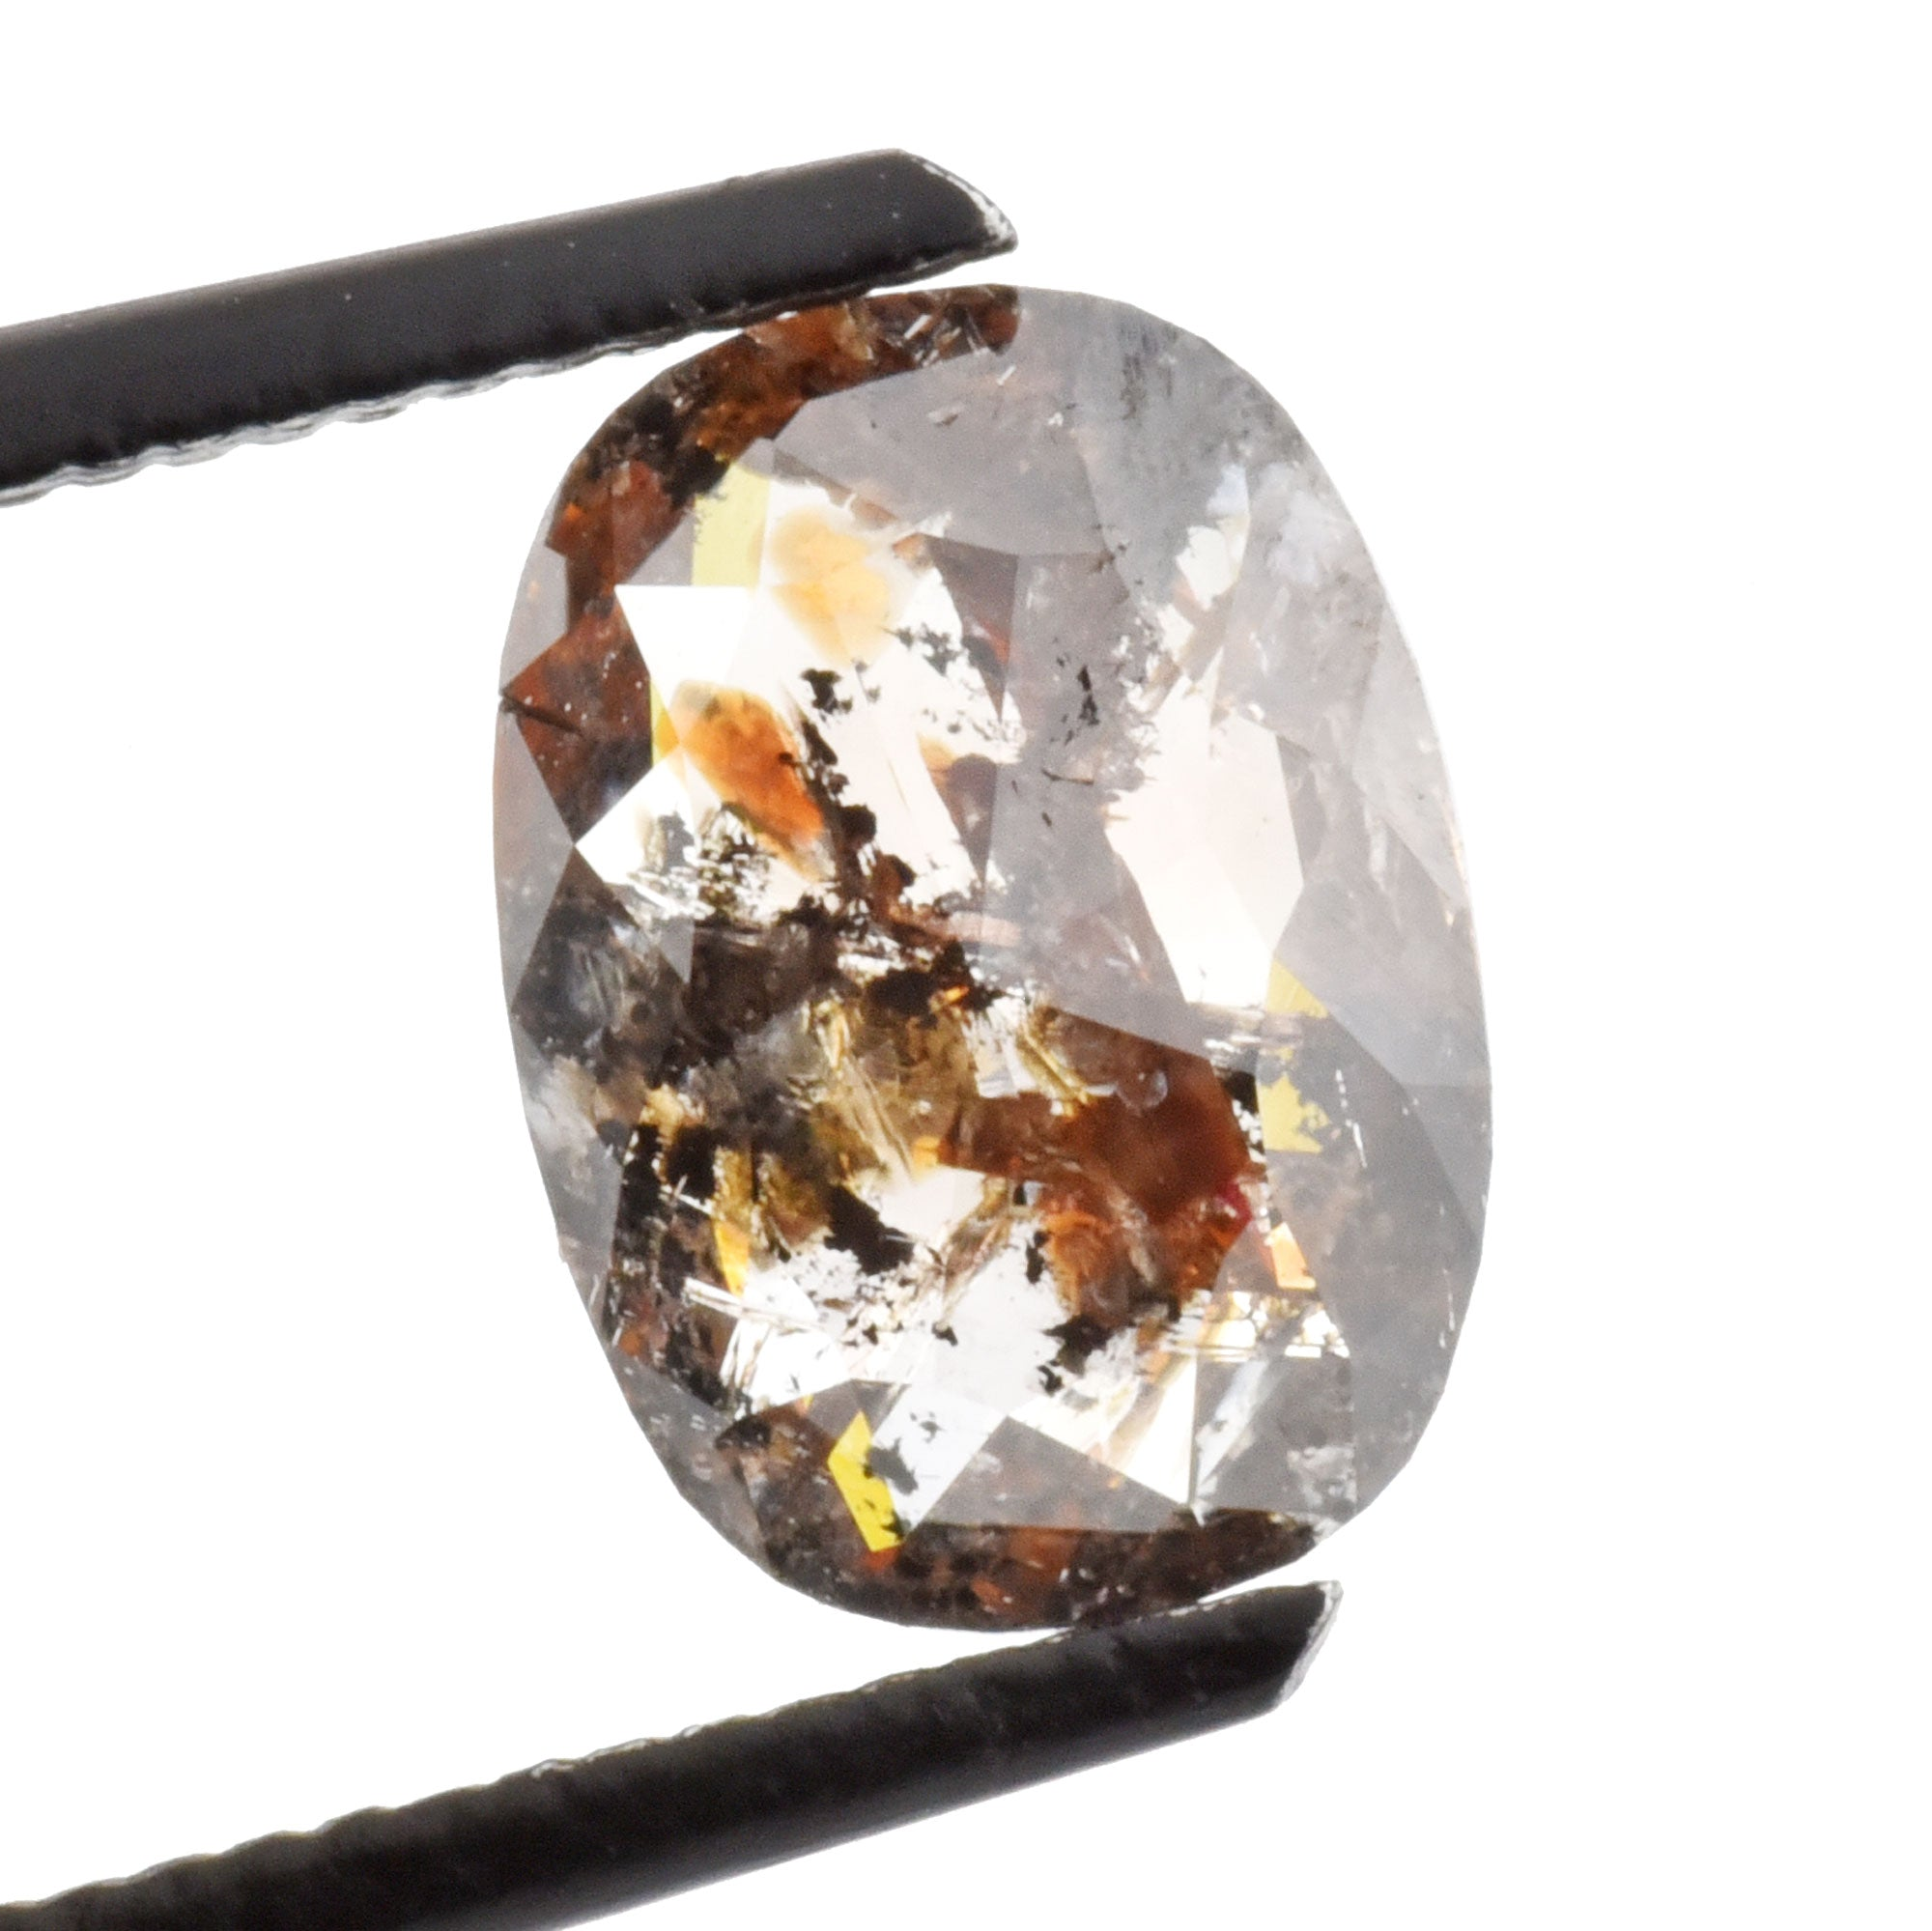 1.45ct Brown Salt & Pepper Rose Cut Cushion Diamond, 9.2x6.6mm